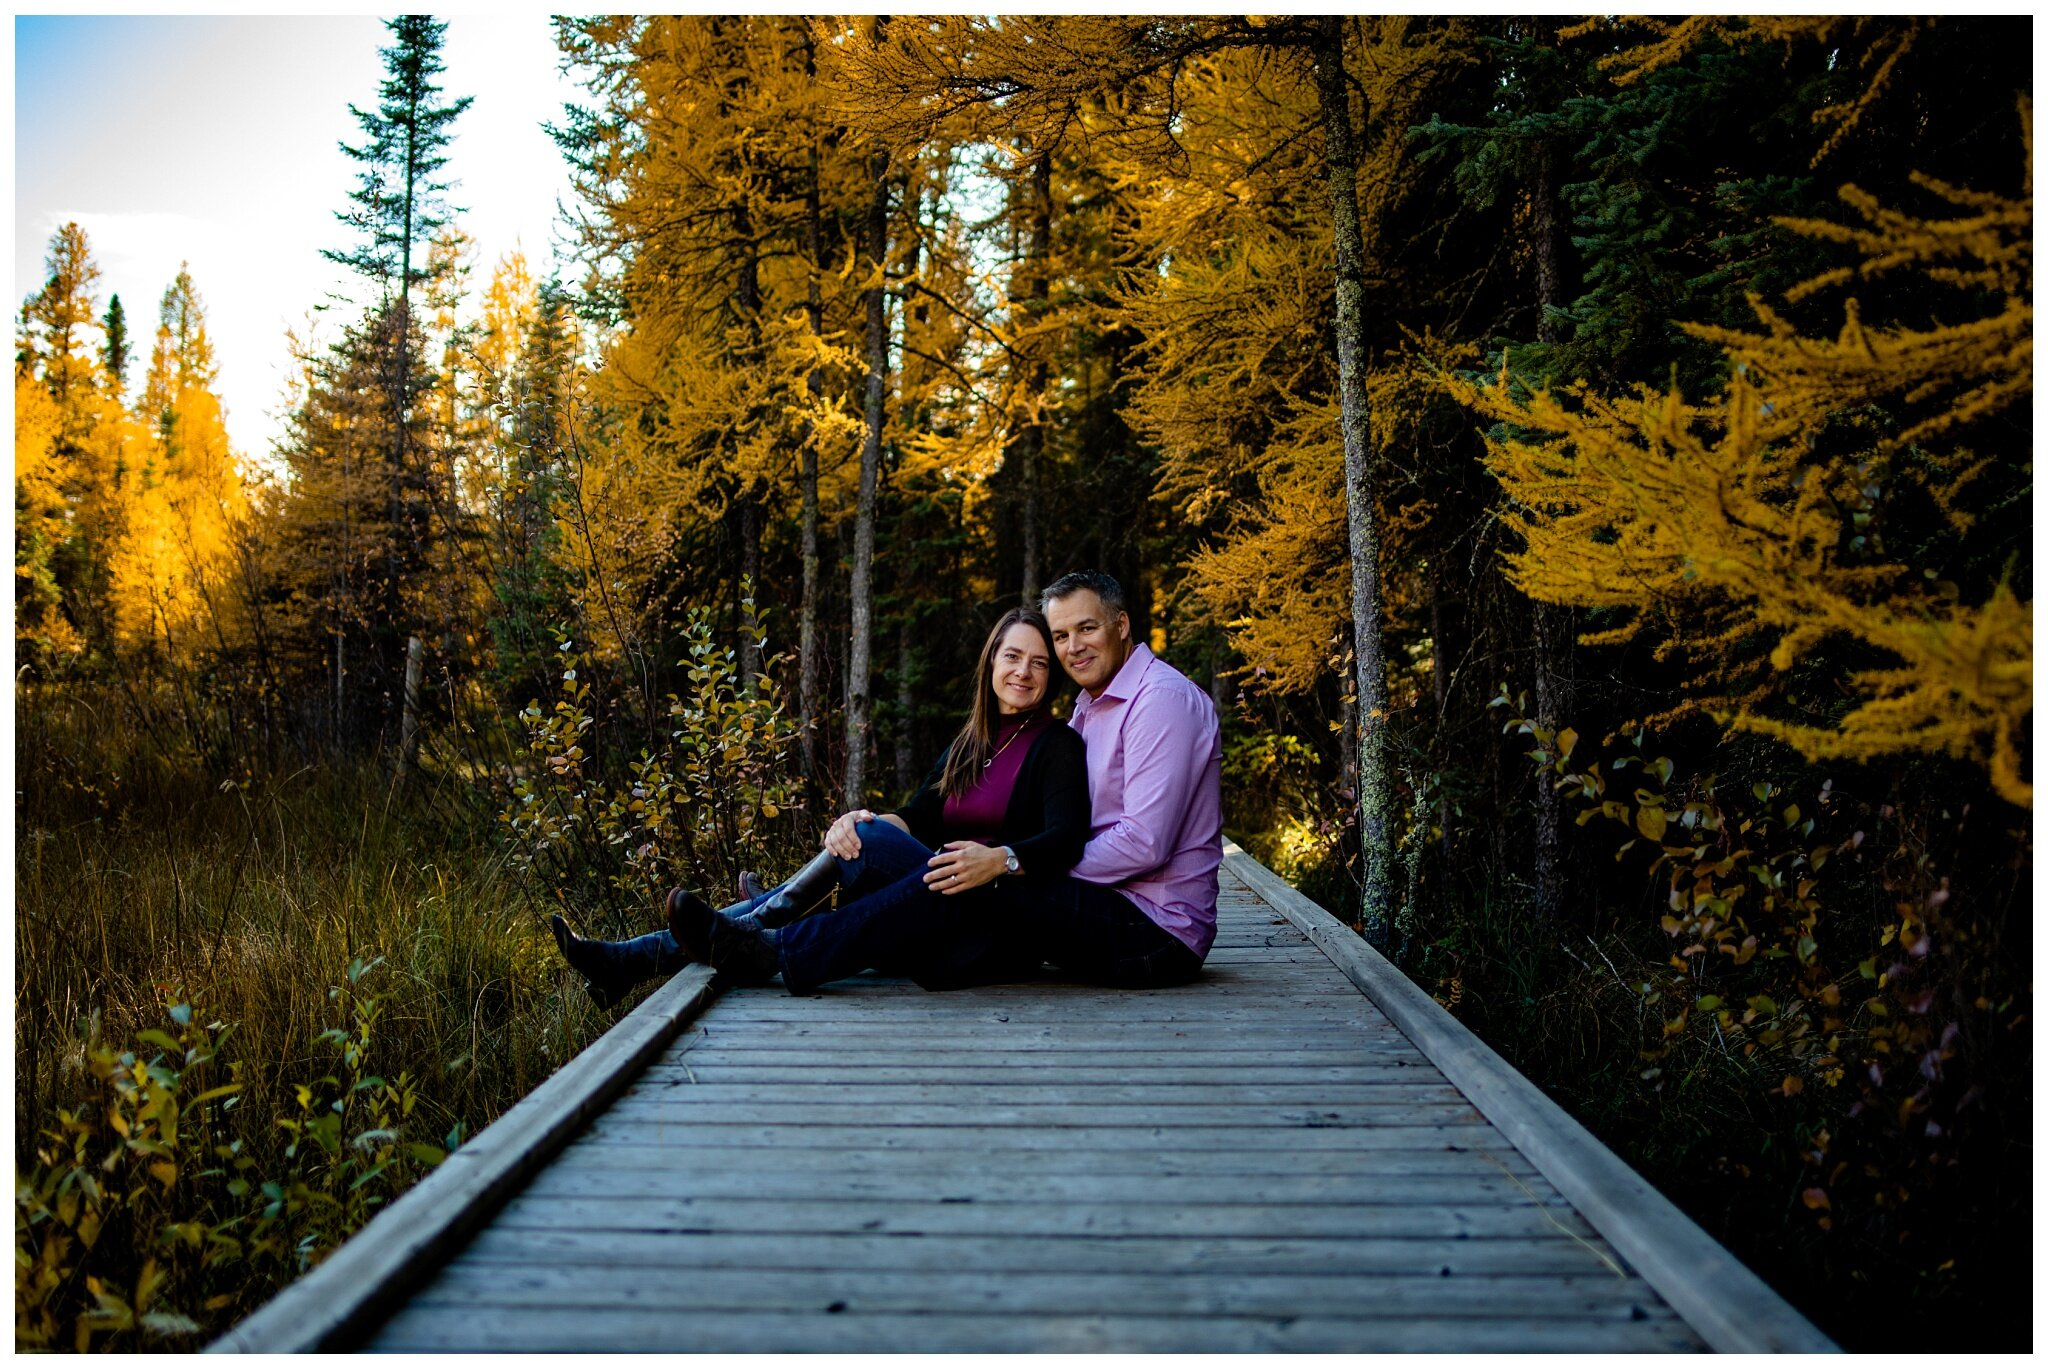 Wagner Natural Area Acheson couples Photographer Alberta  engagement older couple romantic fall photos_0016.jpg